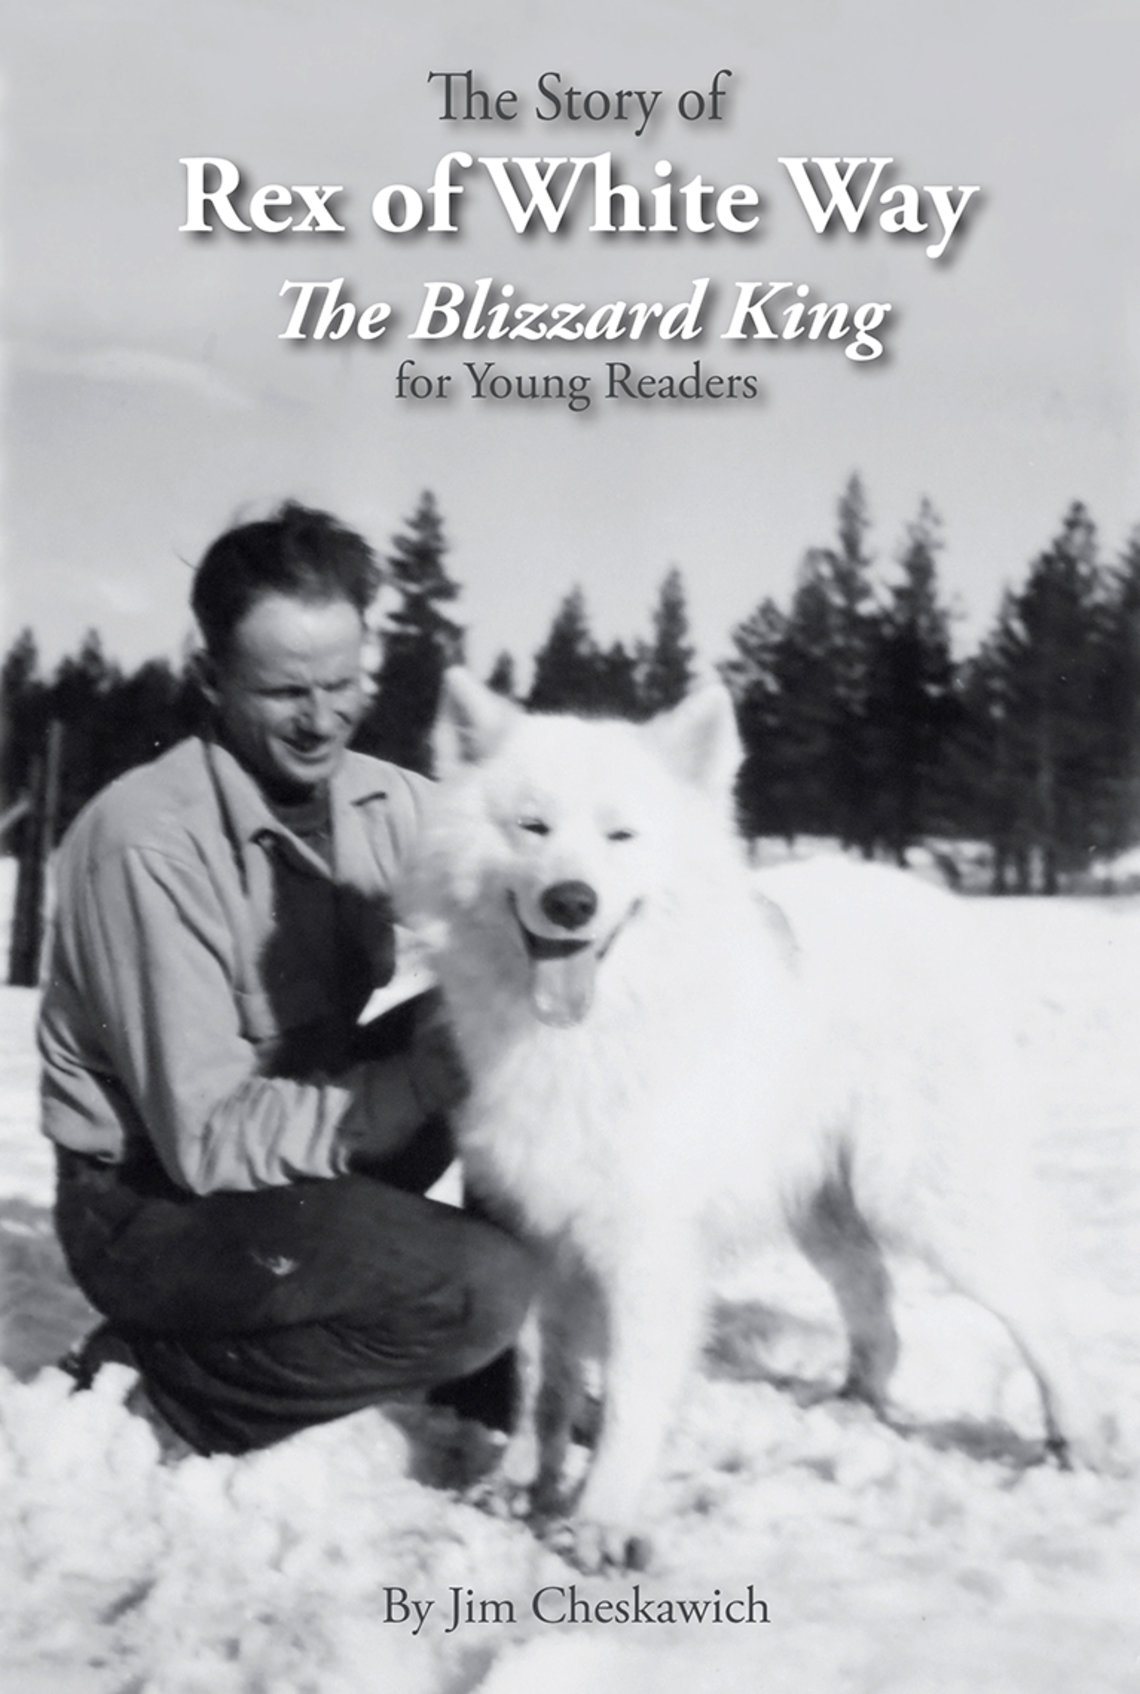 Book cover shows a man and his dog